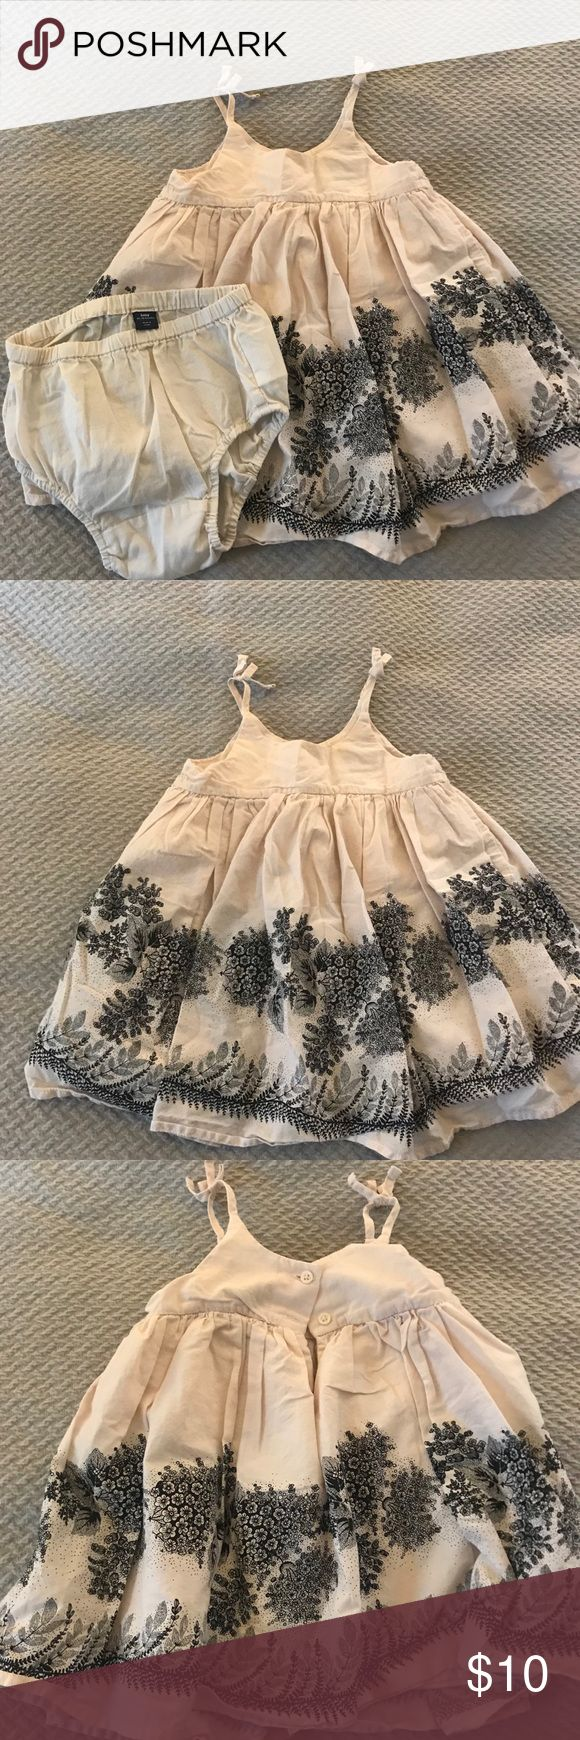 Baby Gap Dress Baby Gap dress in excellent condition, worn once. Dresses